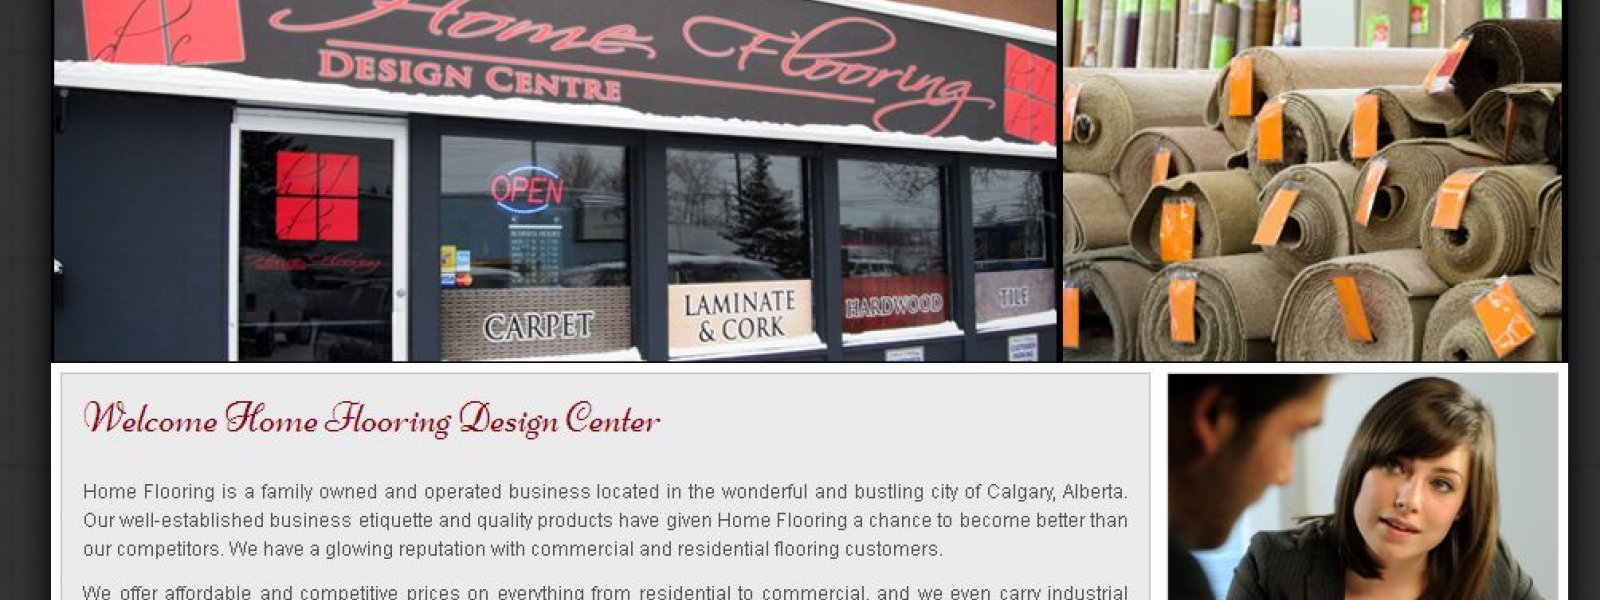 Home Flooring Design Centre   423 58th Avenue SE, Calgary, AB | N49.com